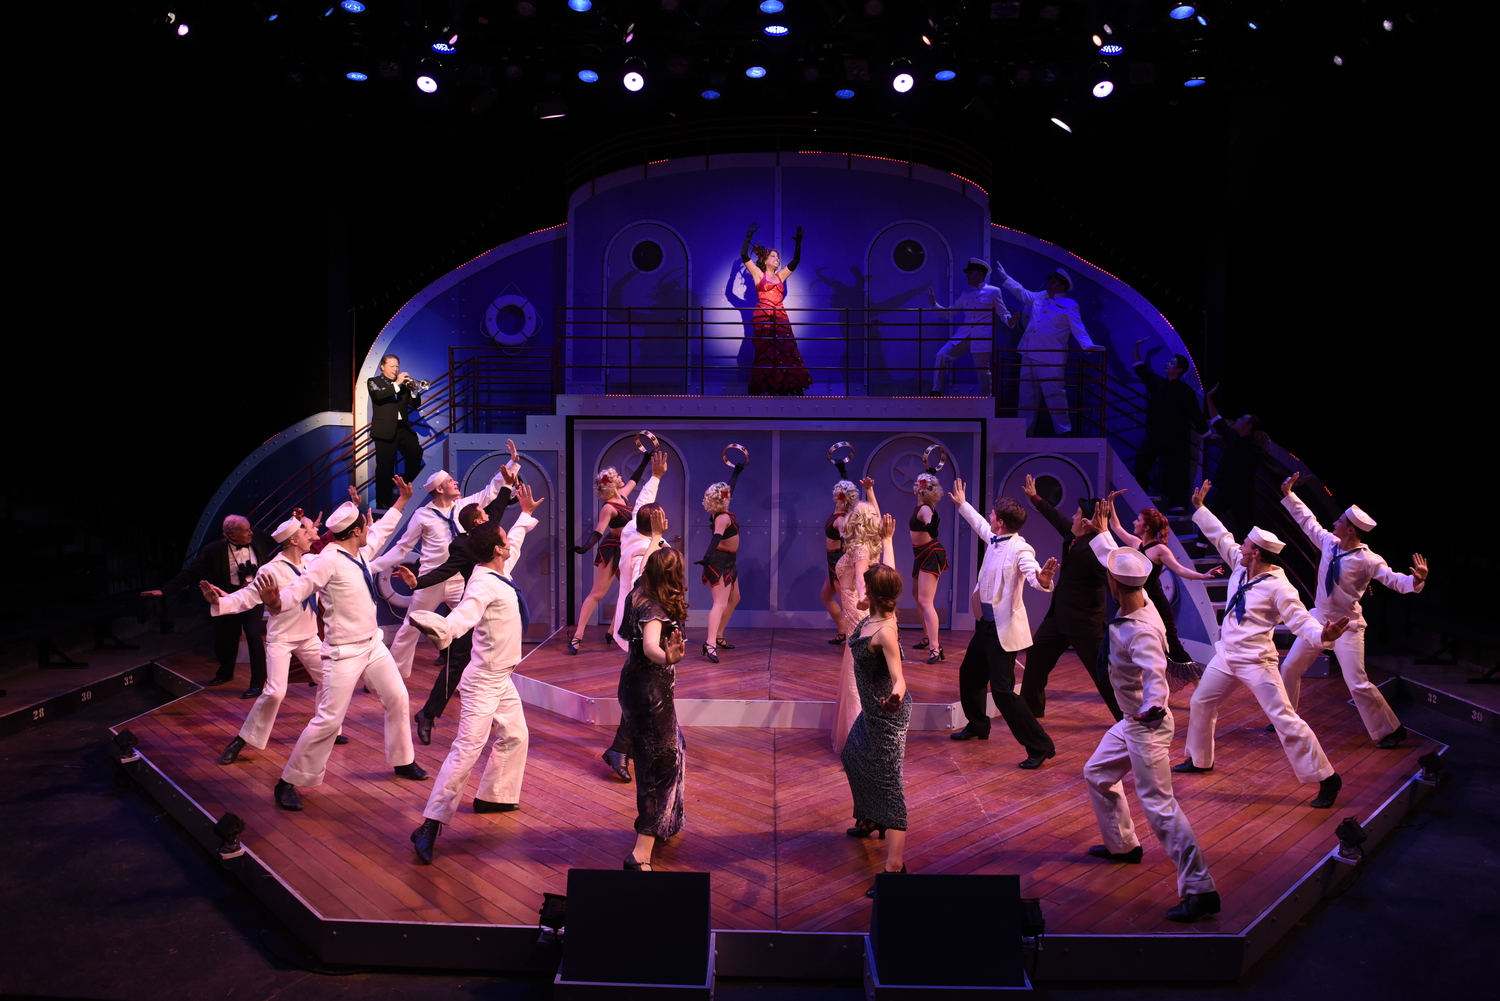 BWW Review: ANYTHING GOES Delightfully Sails at Porthouse